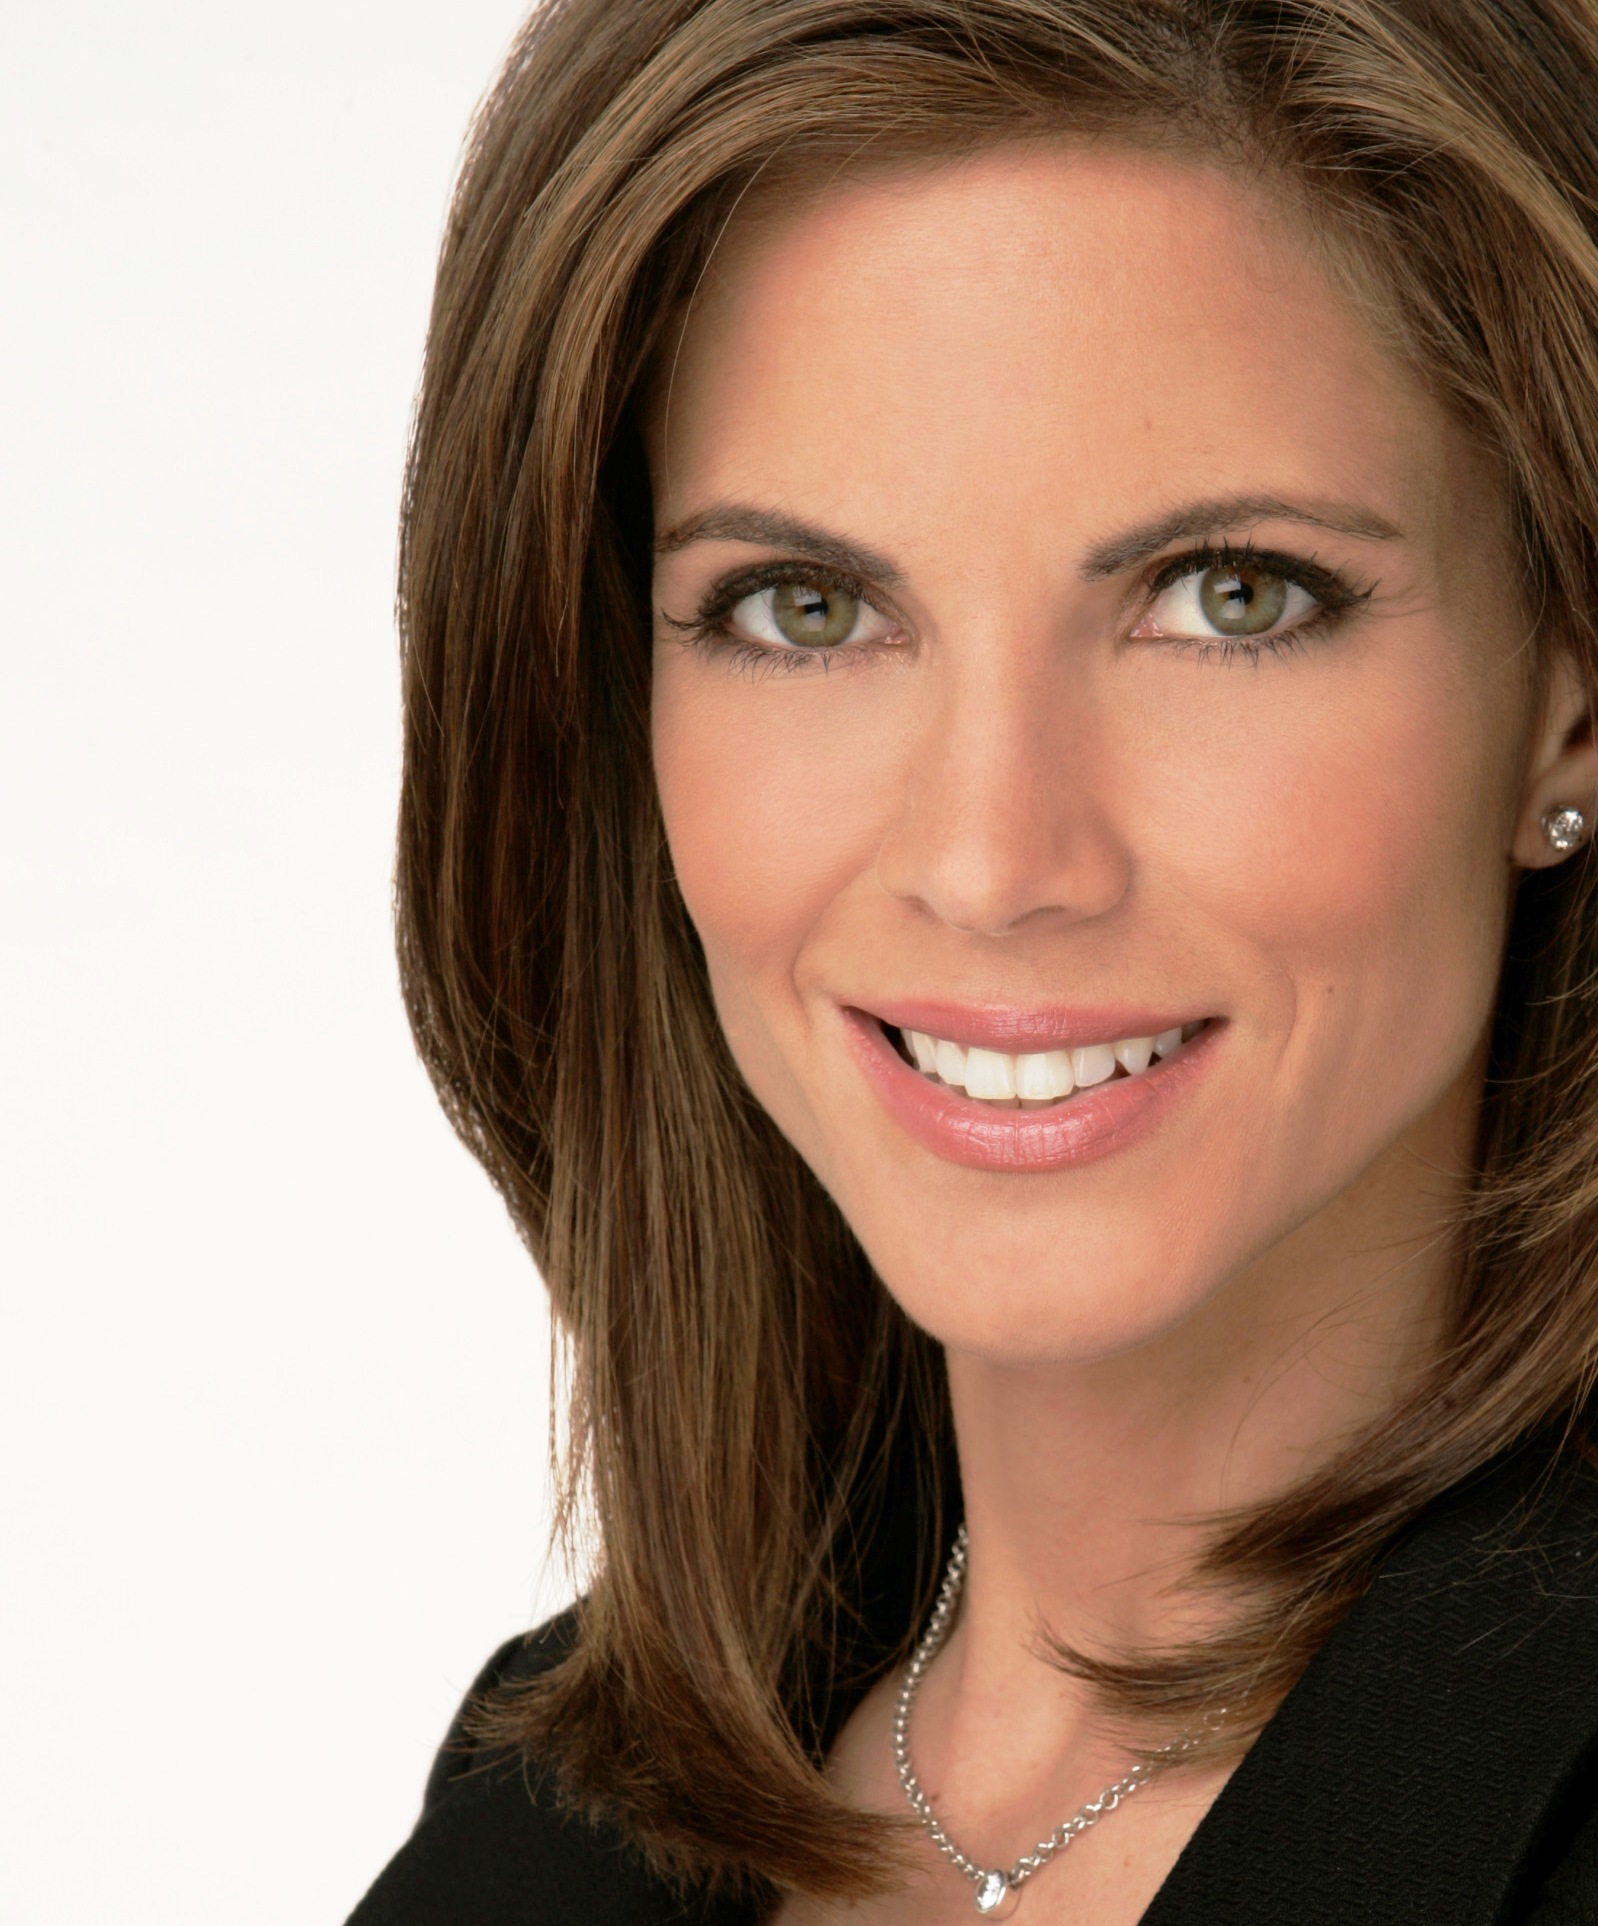 Used Cars In Howell Mi Natalie Morales profile Famous people photo catalog.